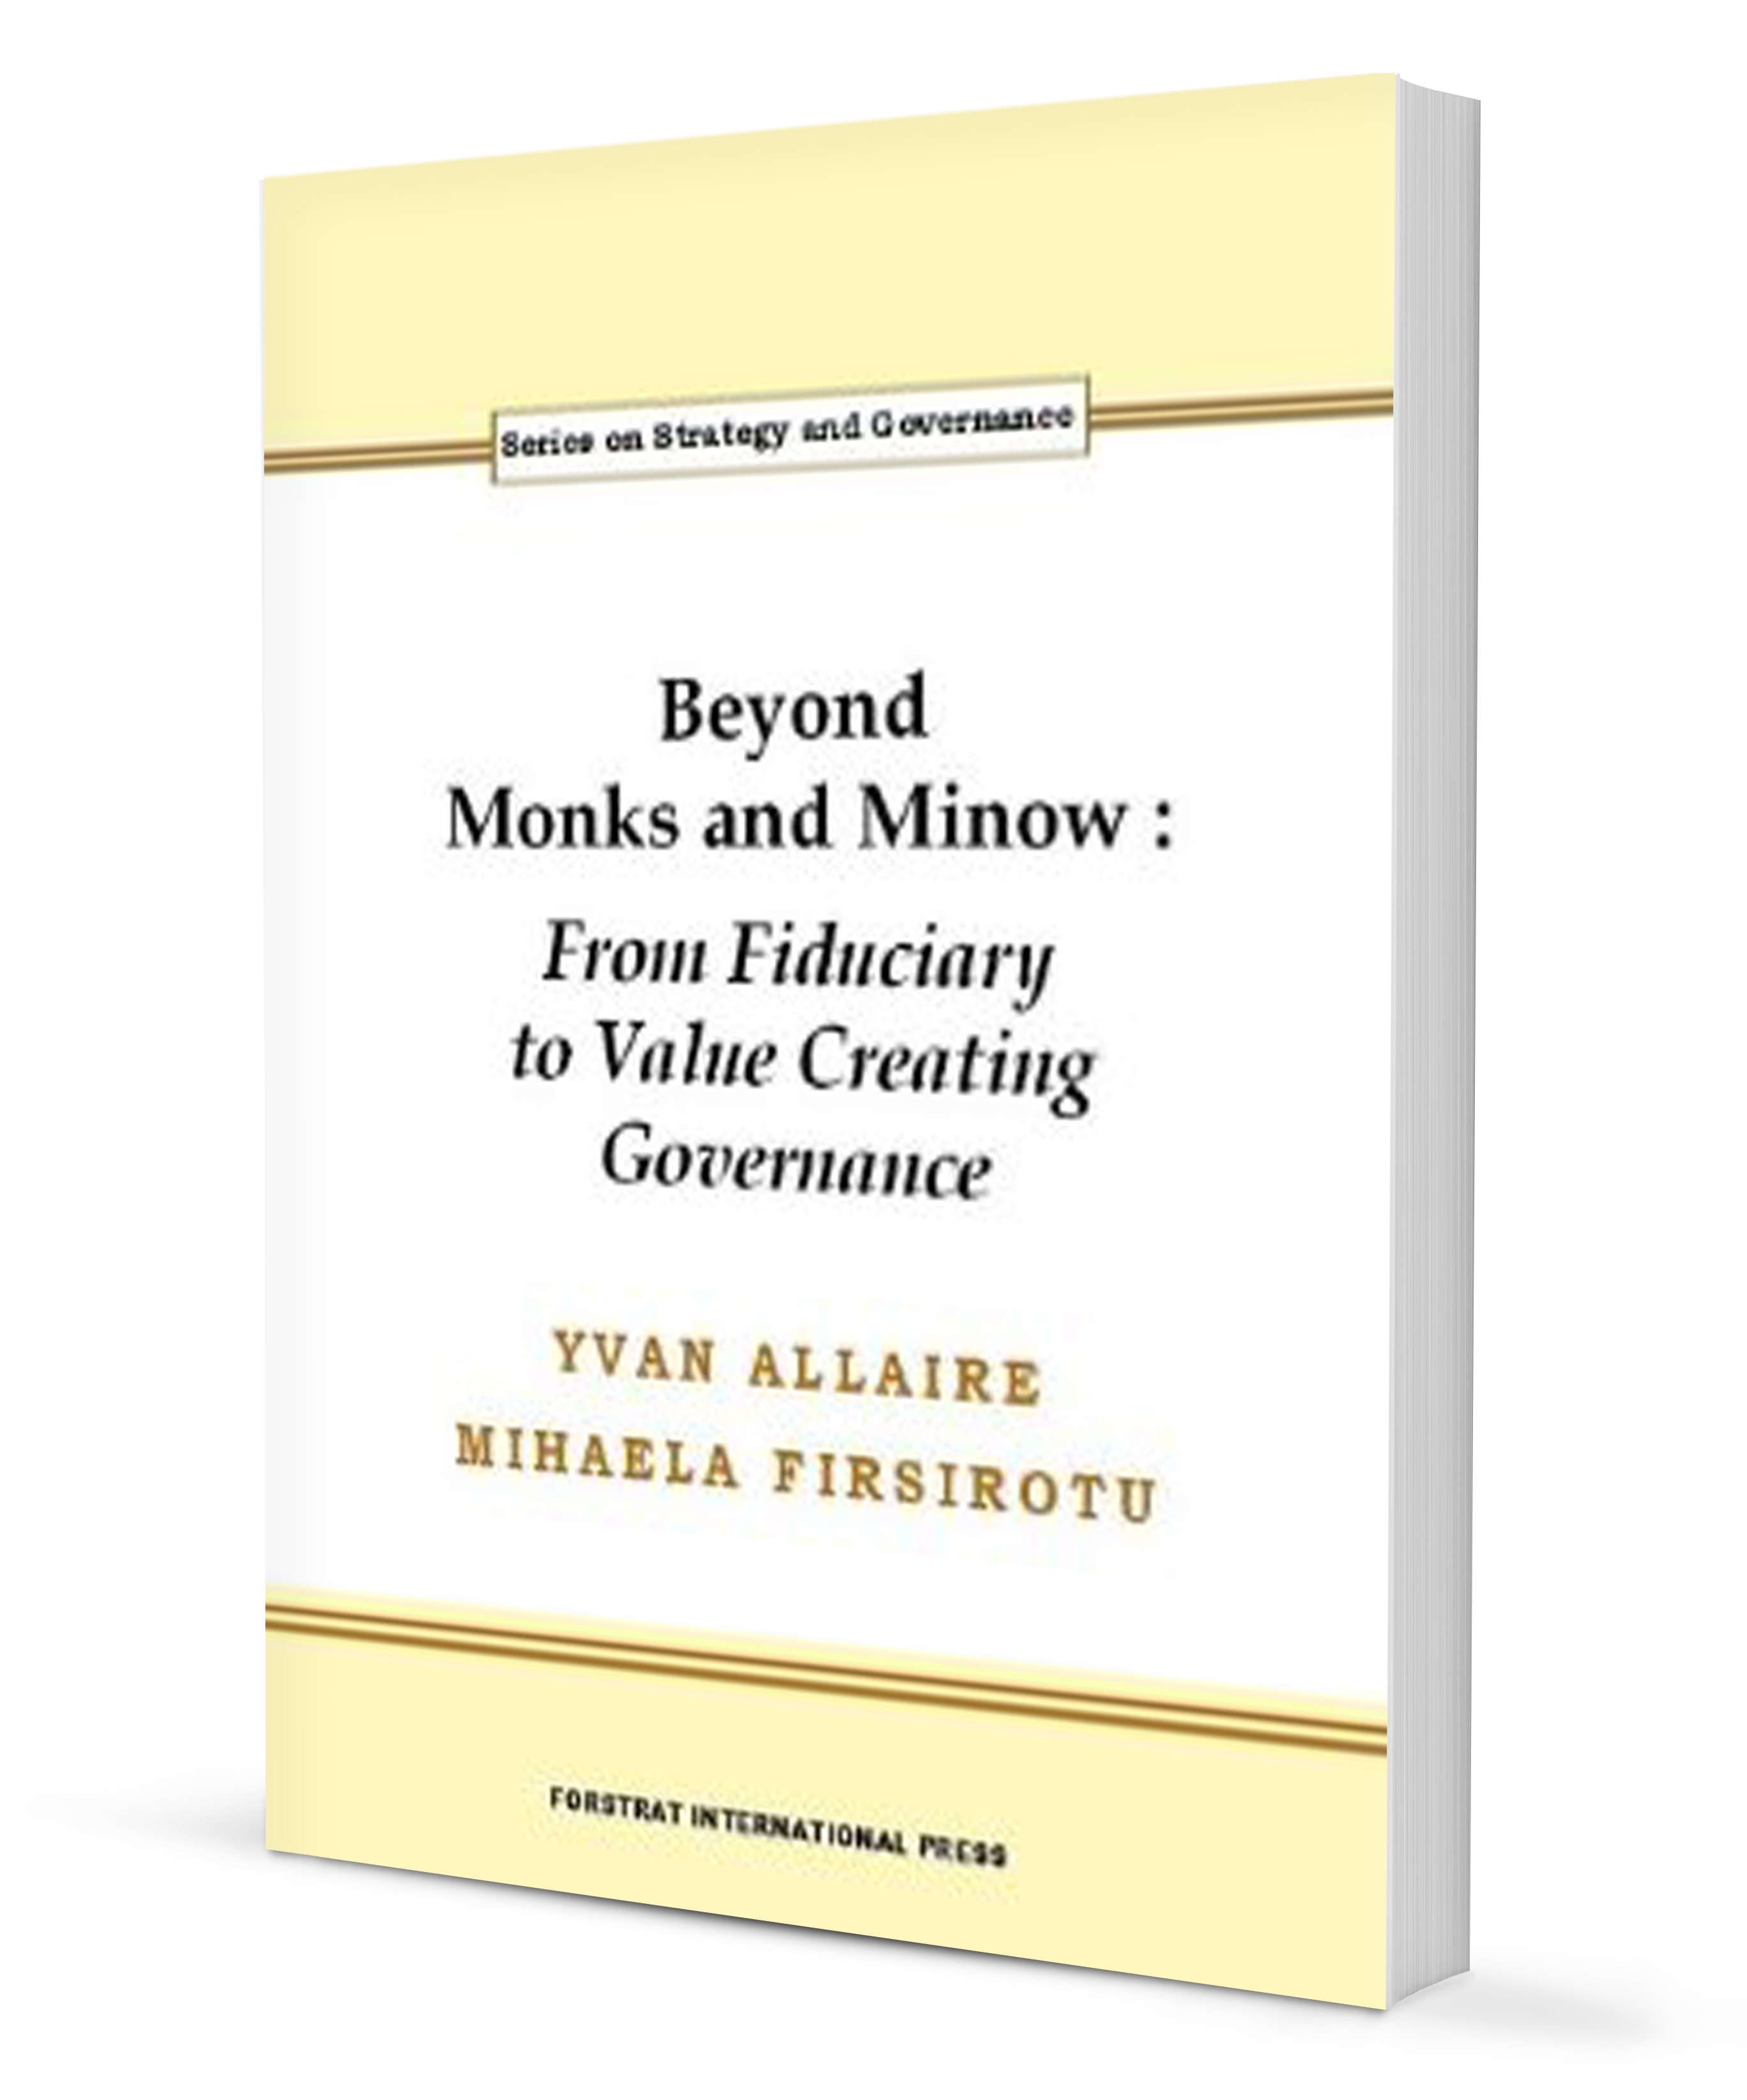 « Beyond Monks and Minow »